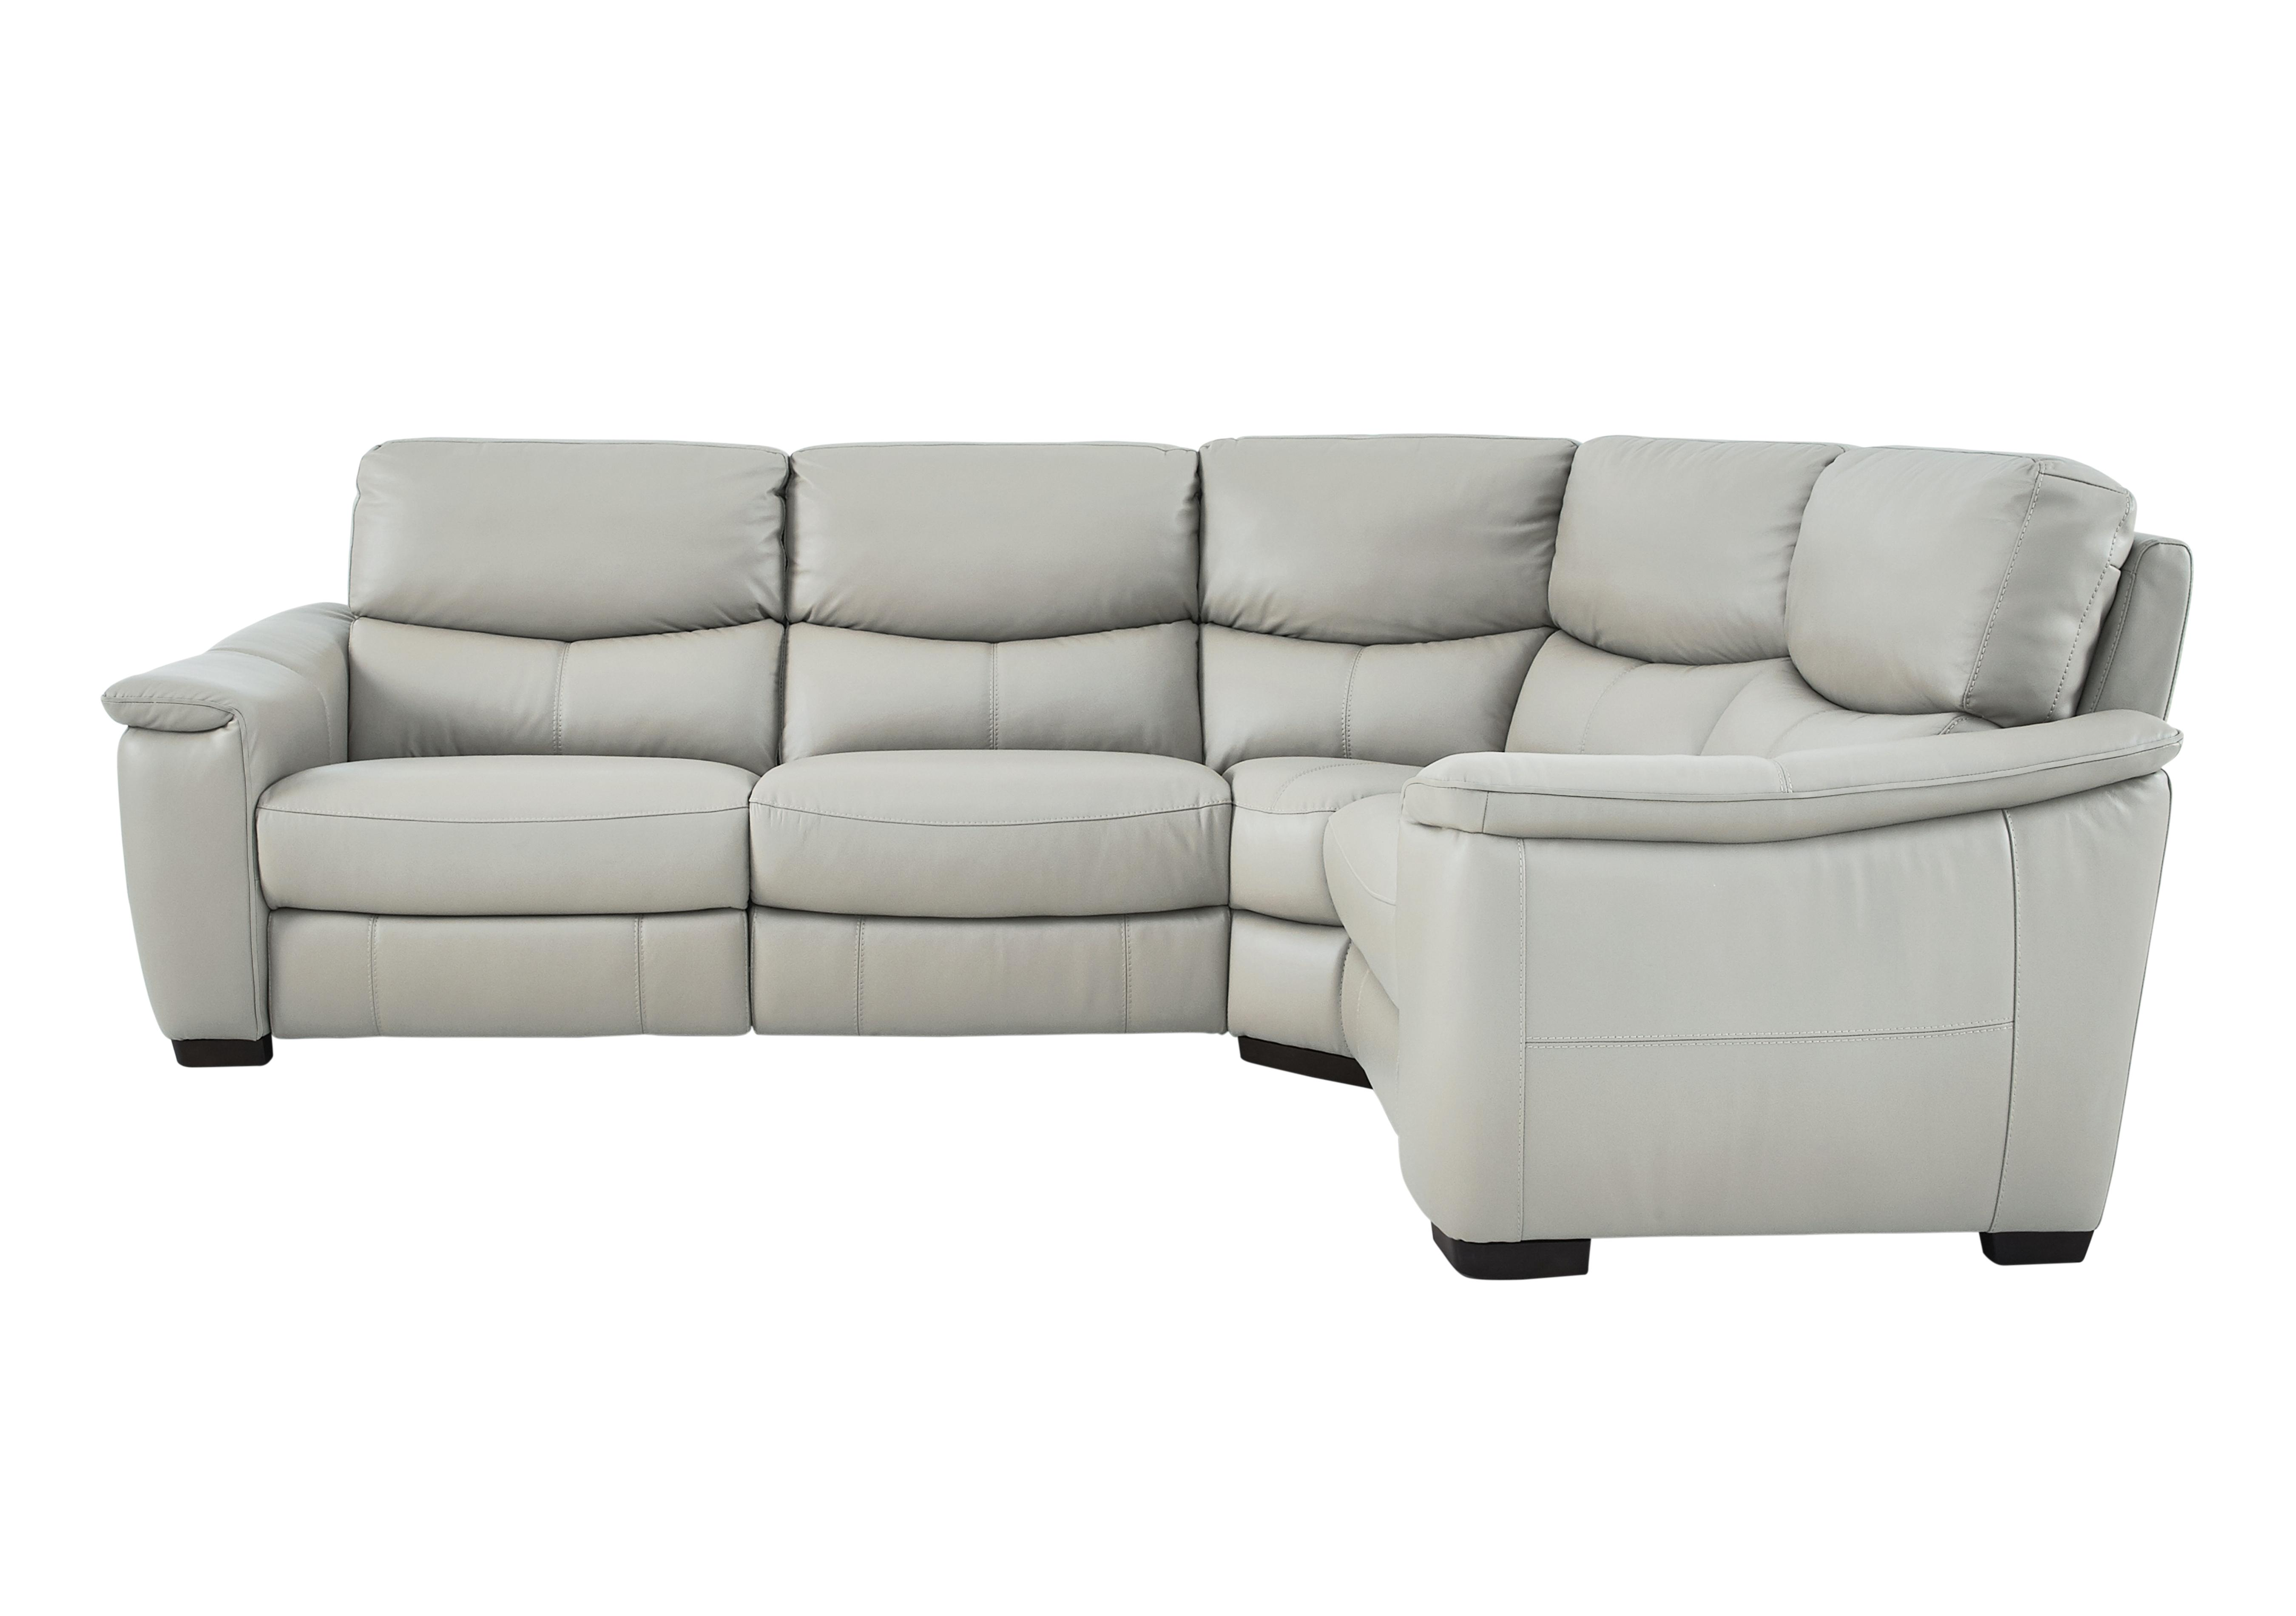 furniture village leather corner sofa bed simmons upholstery harbortown reviews flex recliner only one left